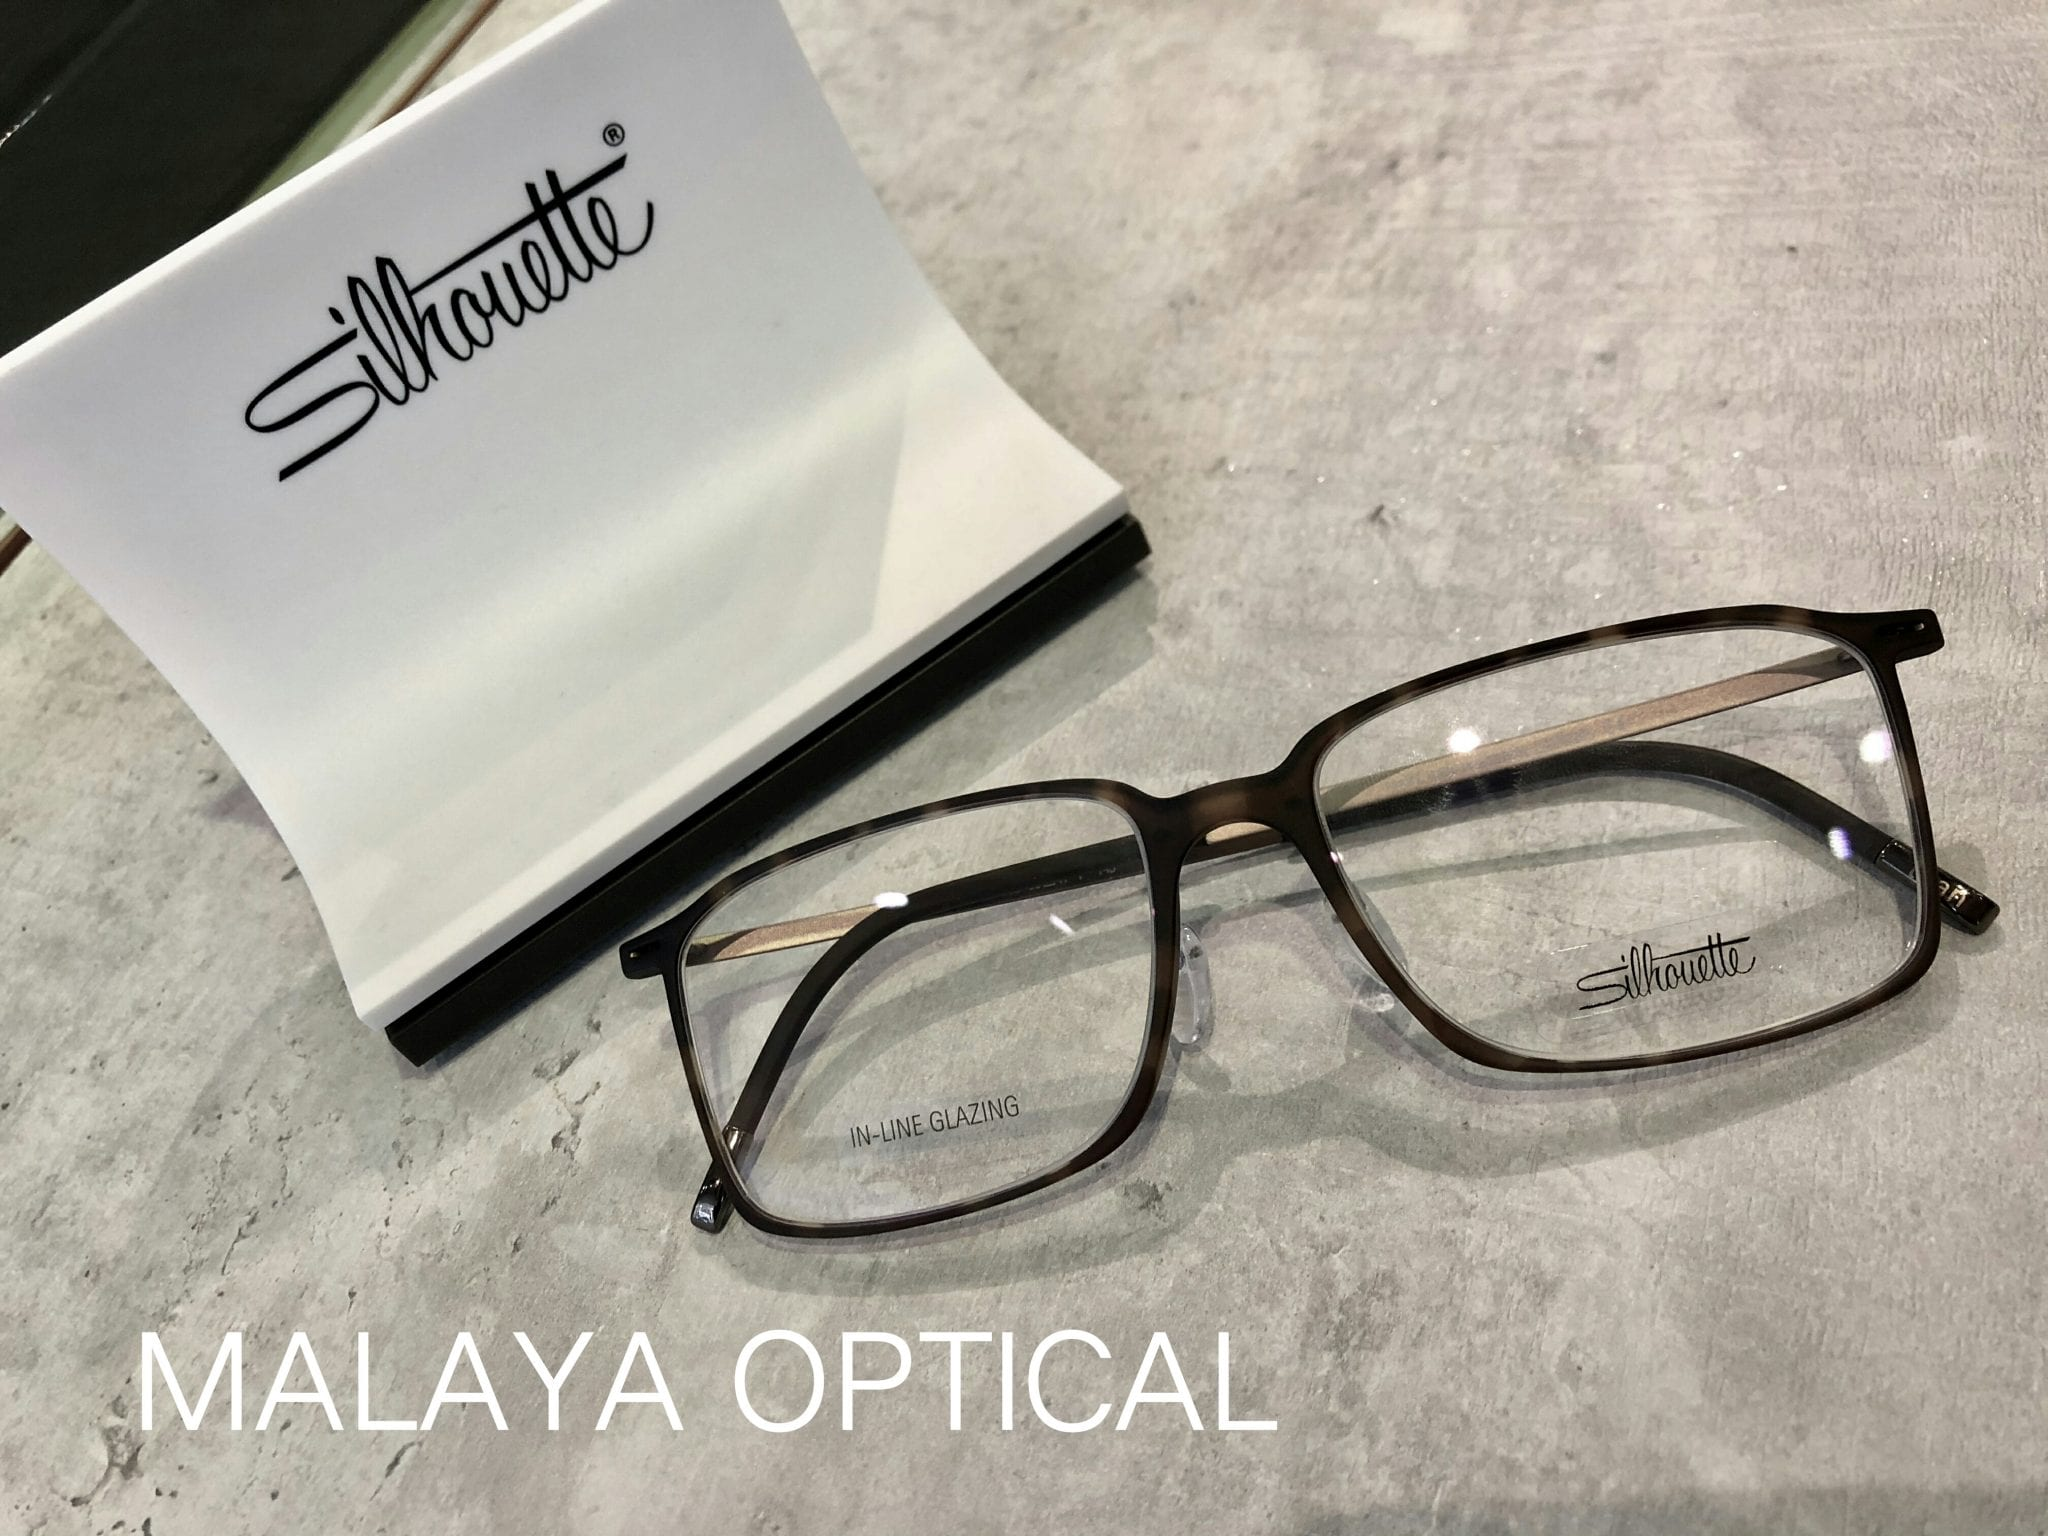 69c61faf8b It is believed that what makes a pair of Silhouette spectacles unique is  due to the unlimited possibilities in term of shape